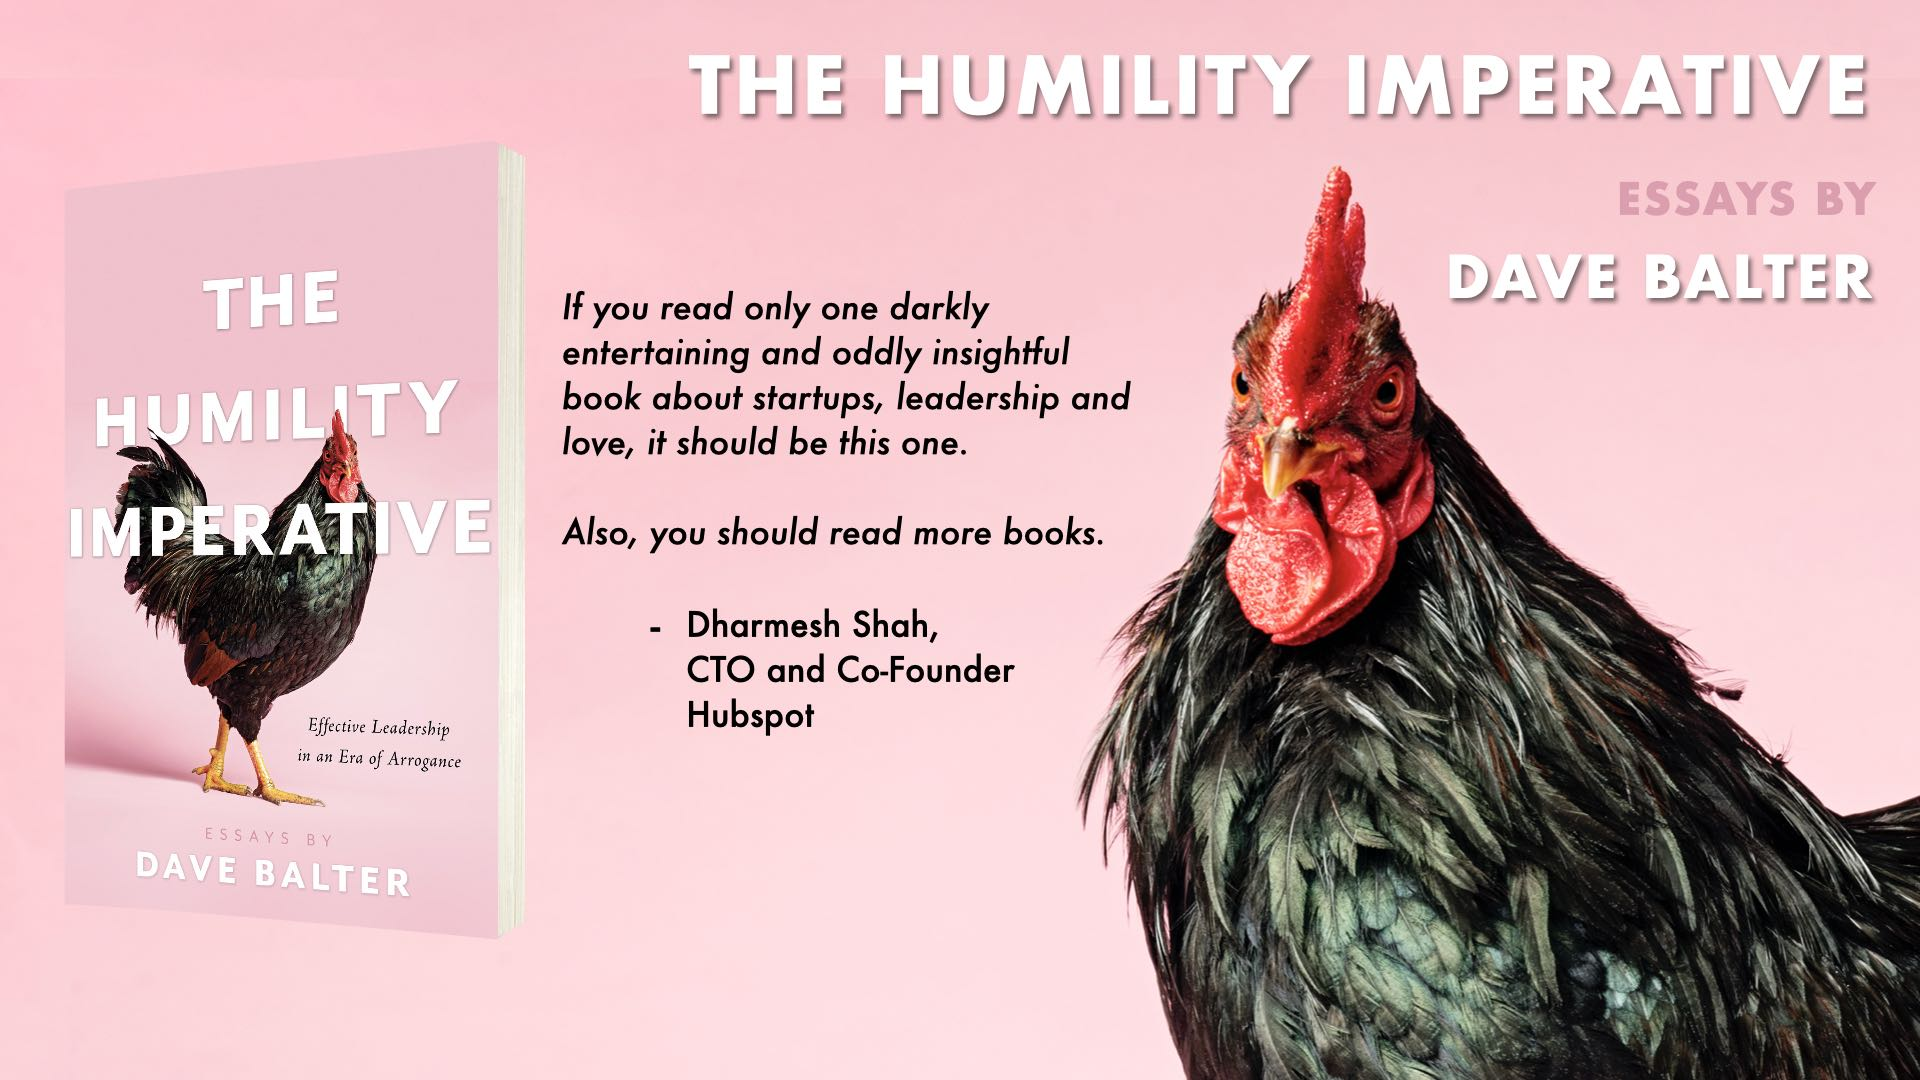 The Humility Imperative - Essays by Dave Balter